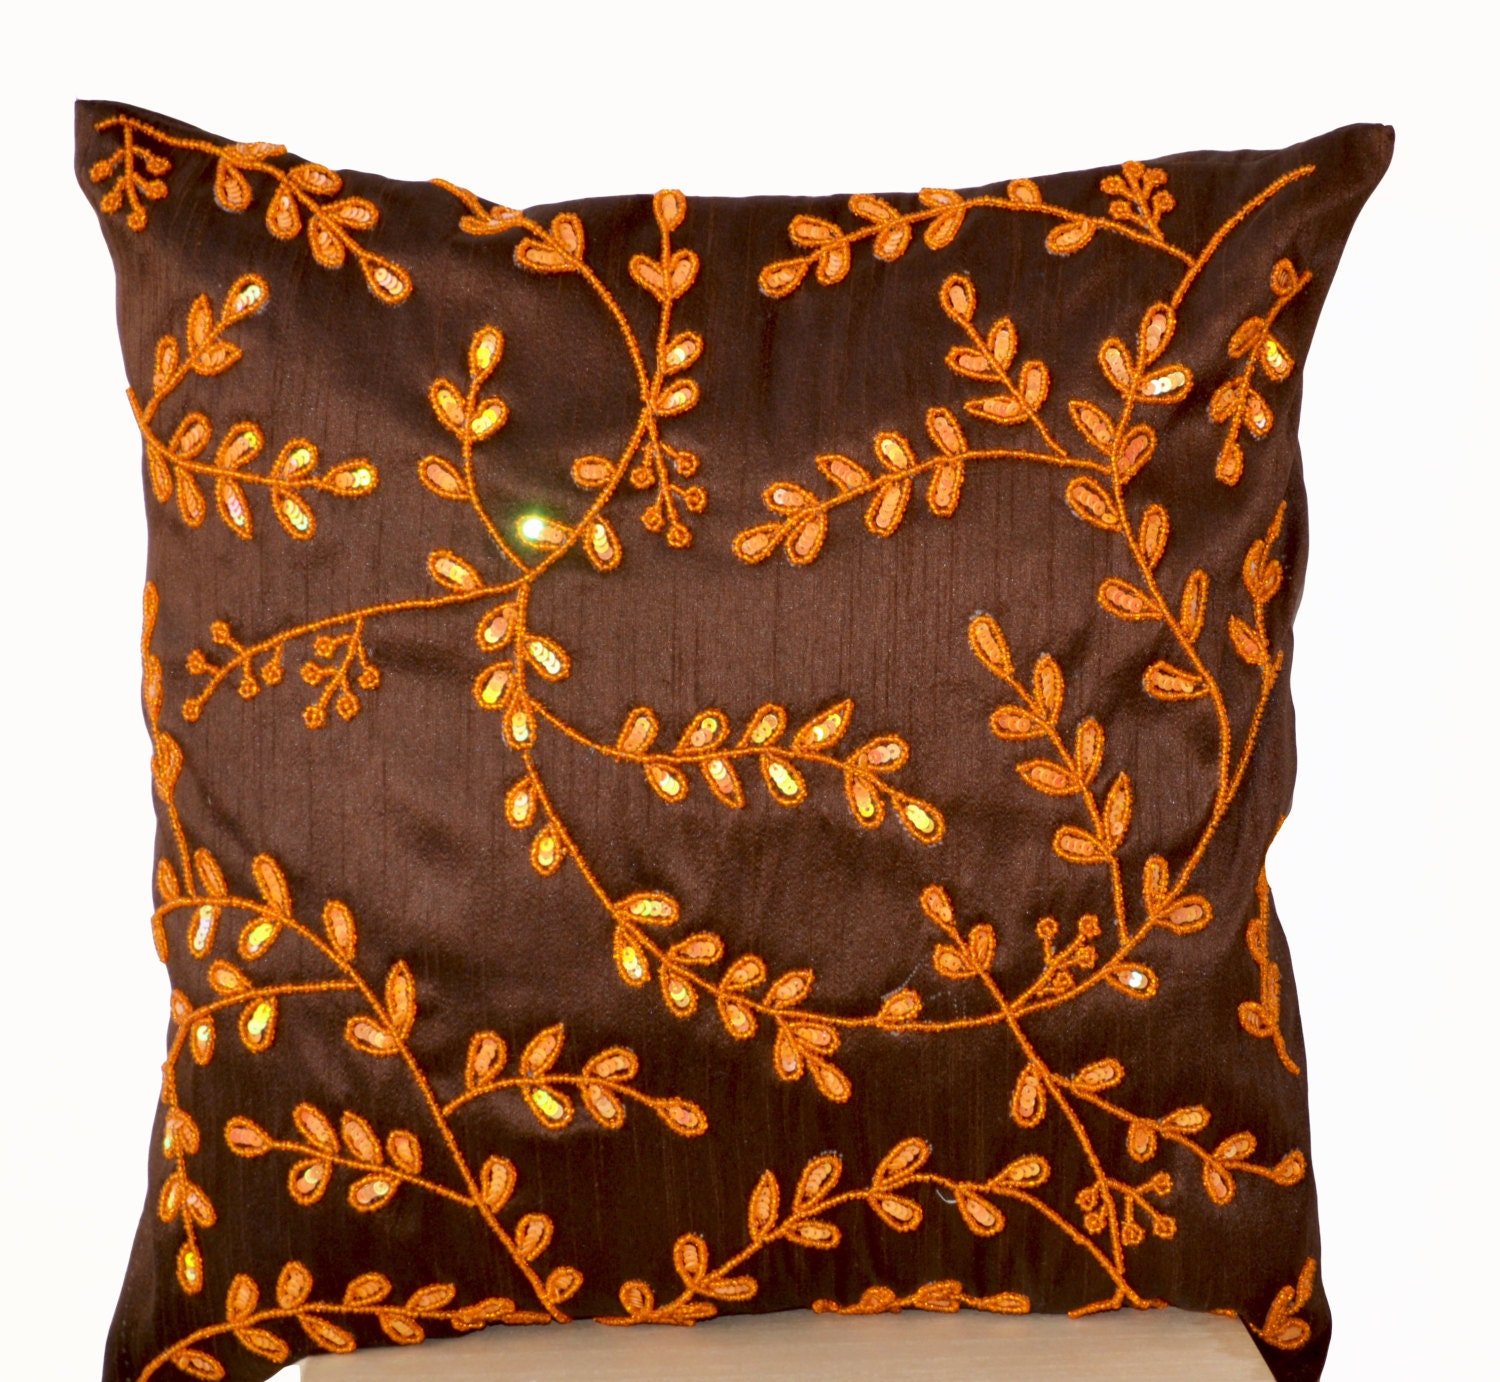 Brown Sofa Pillows: Brown Throw Pillows With Orange Bead Sequin Detail Orange